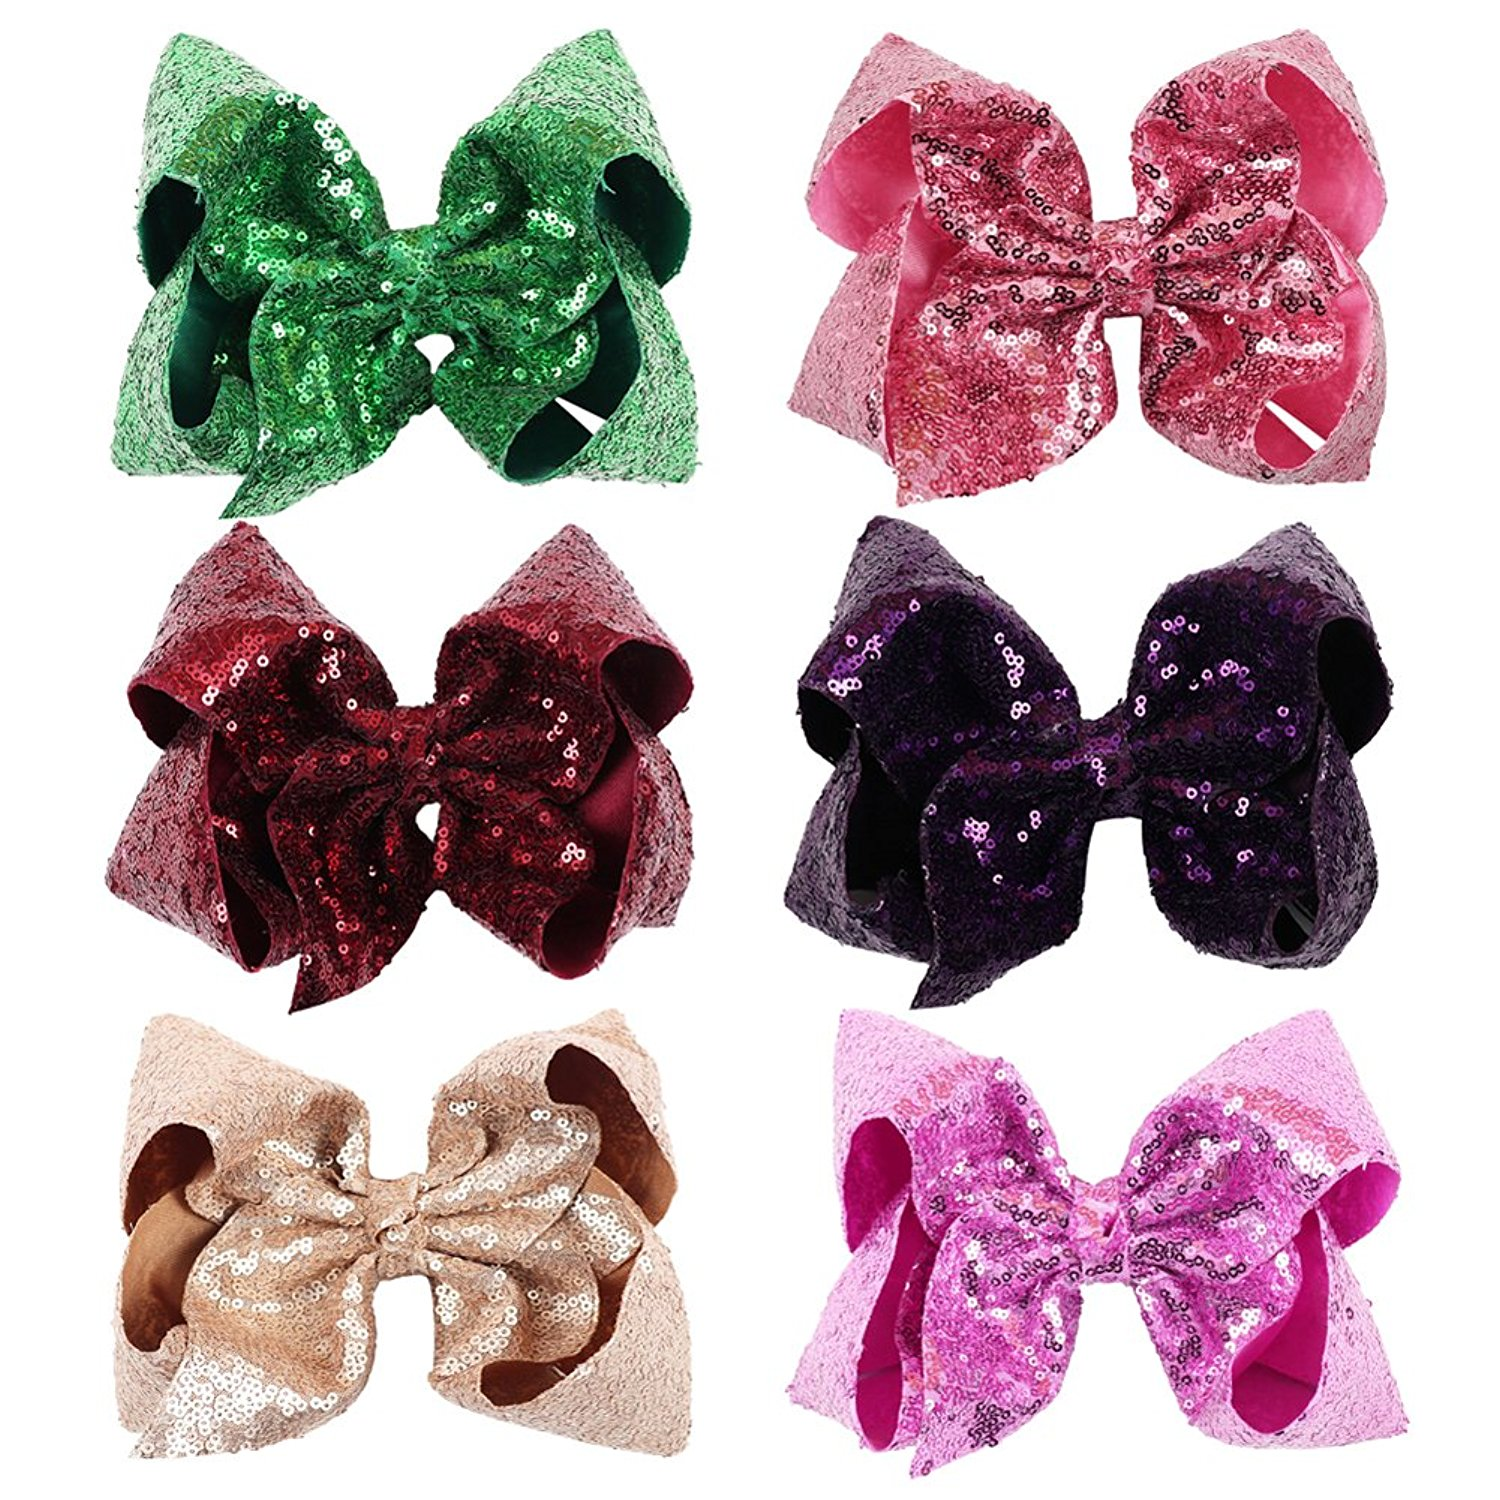 Cheap Cute Hair Bows For Women, find Cute Hair Bows For Women